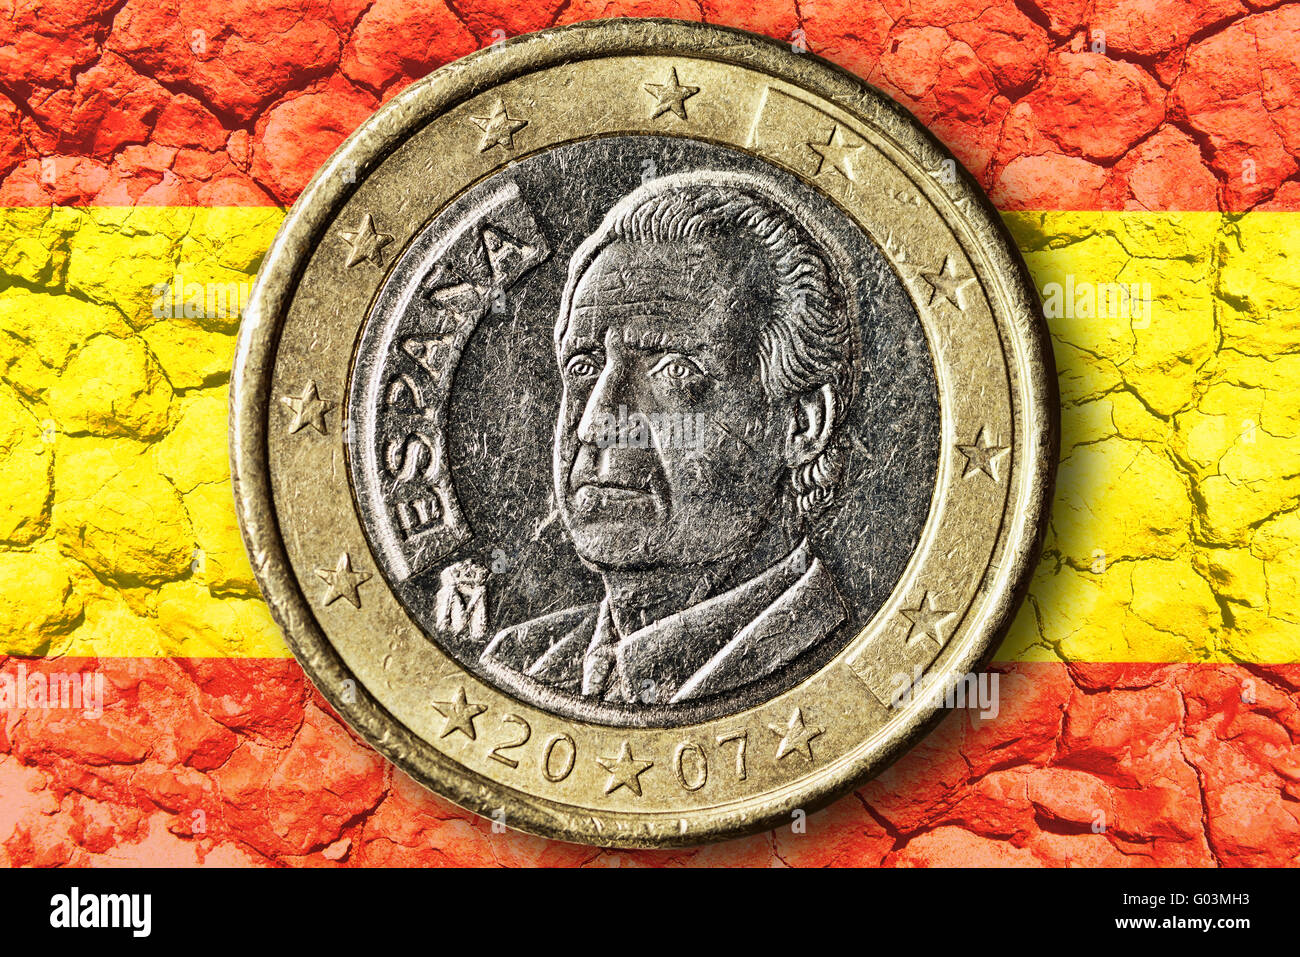 Spanish euro coin, debt crisis - Stock Image